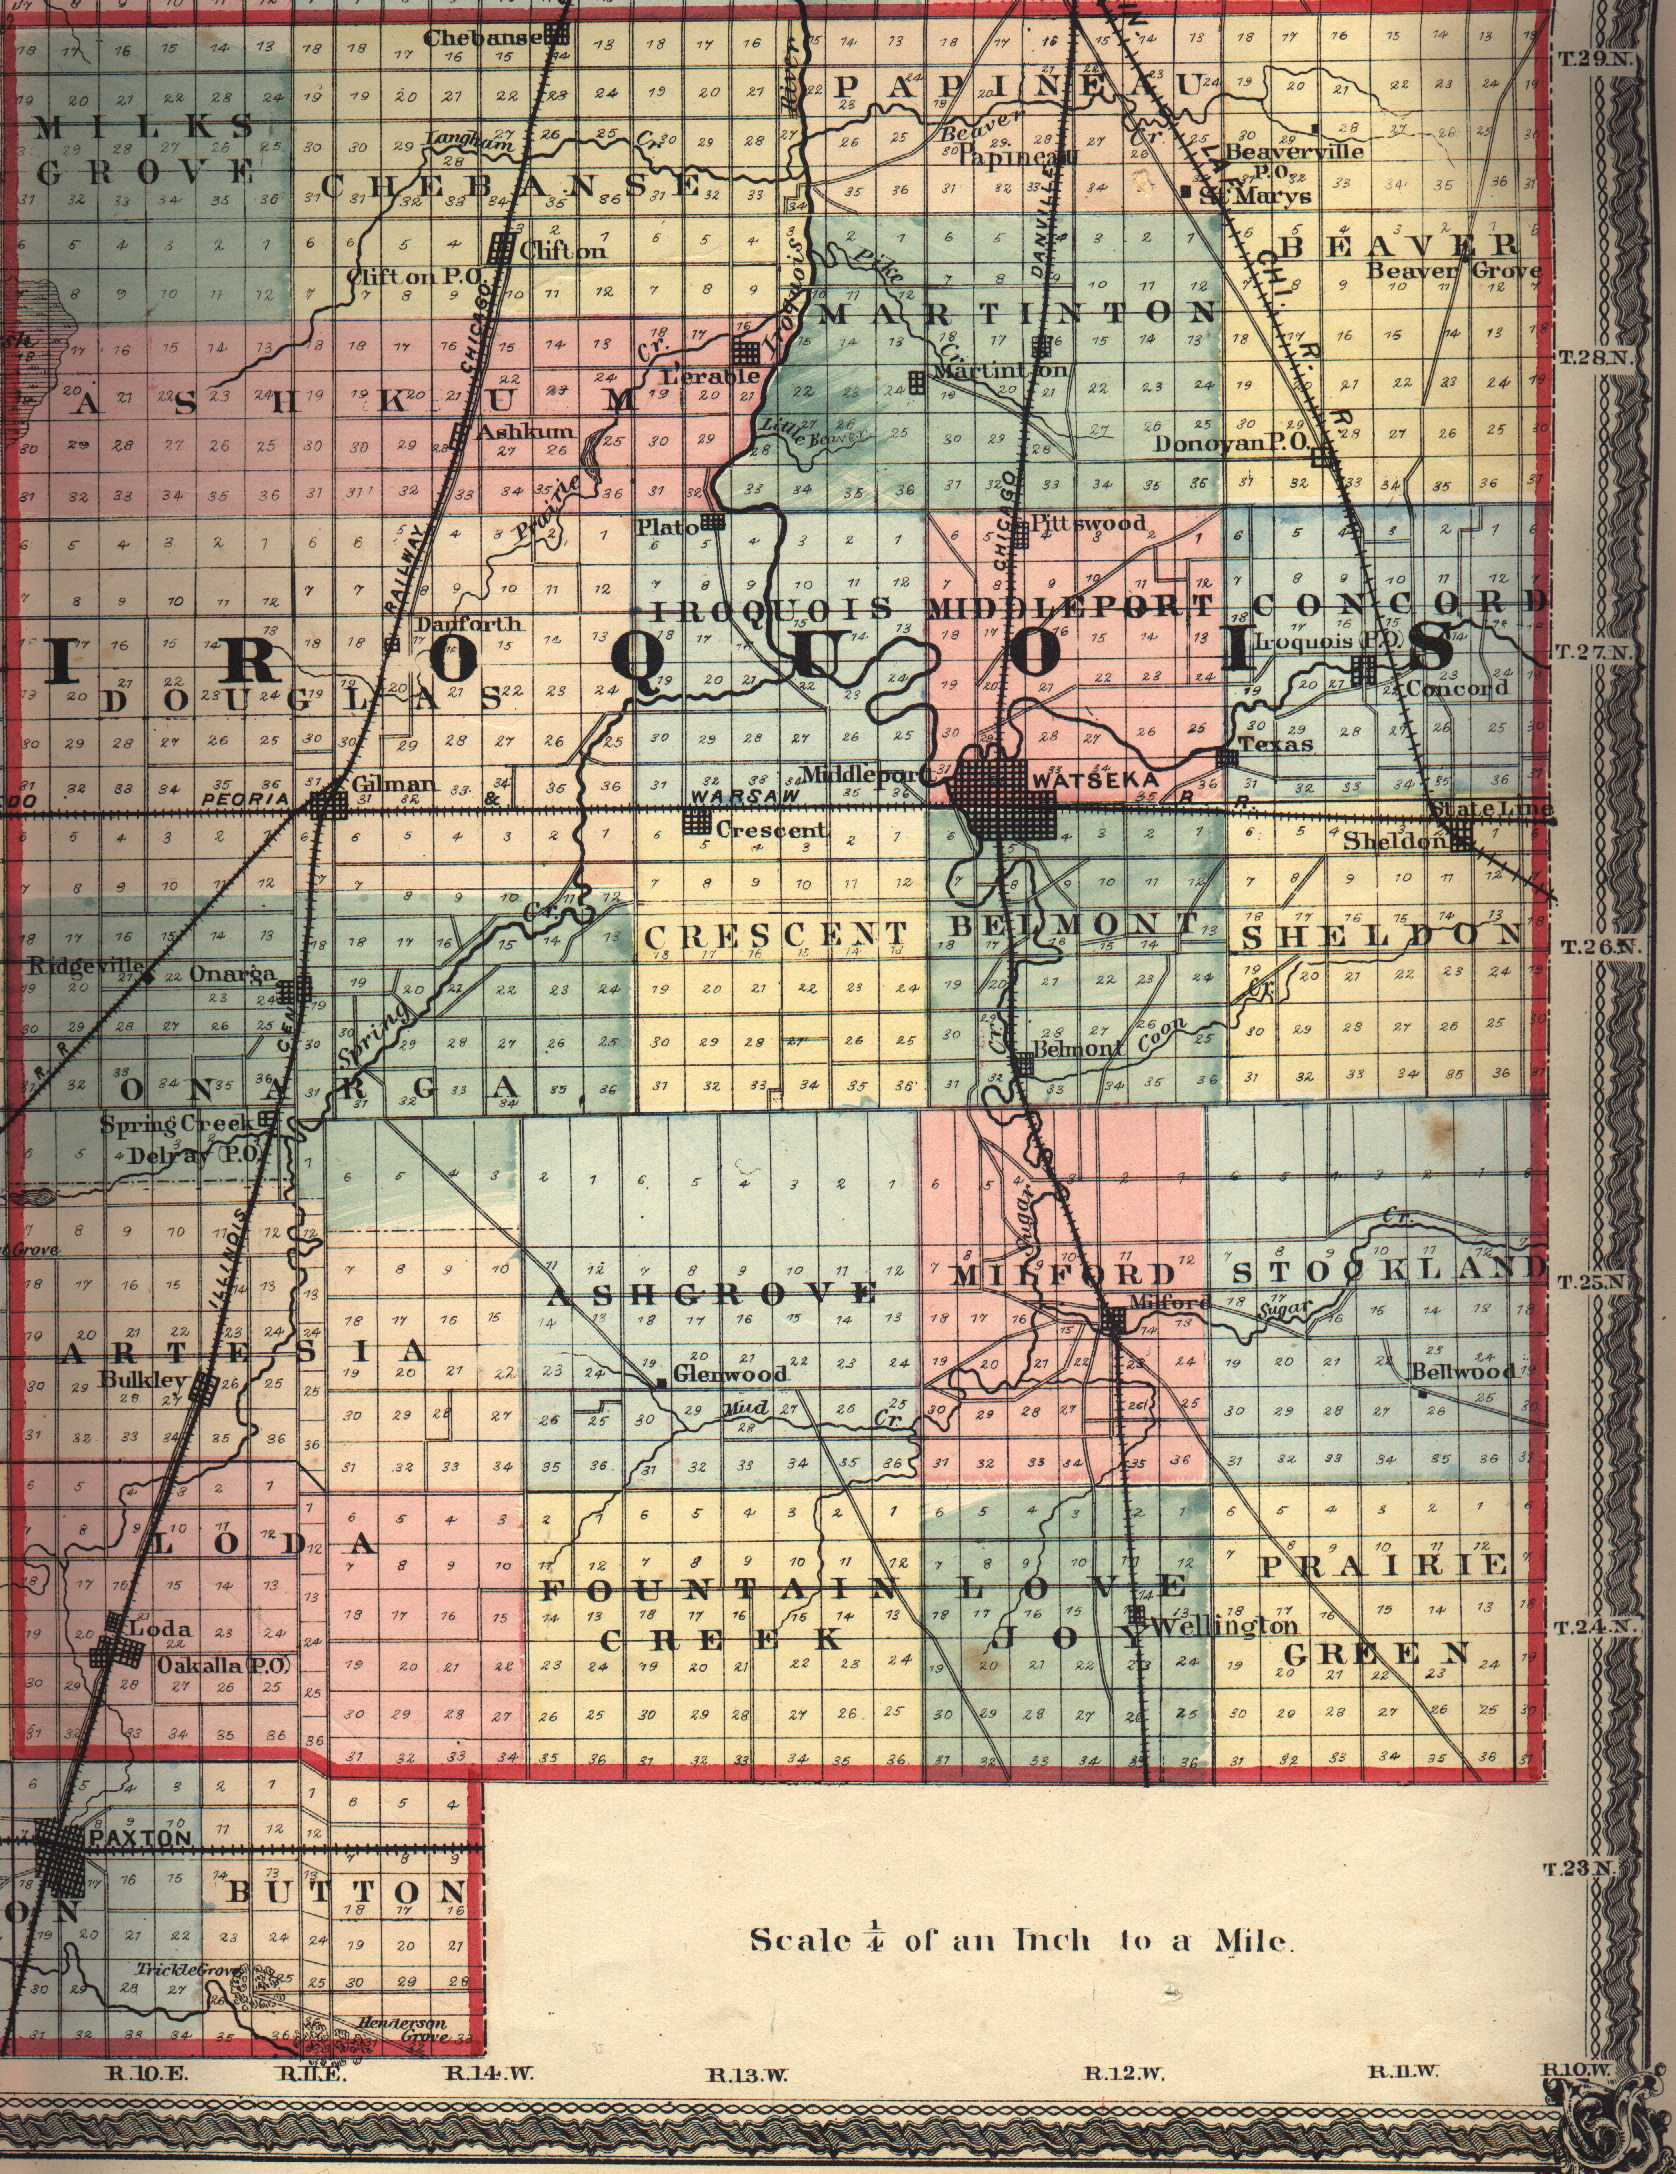 Illinois iroquois county loda - 7 5 Minute Topographic Maps In Iroquois County Identifies Cemeteries Ashkum Onarga Sectional Map Illinois Central Railroad Company 1856